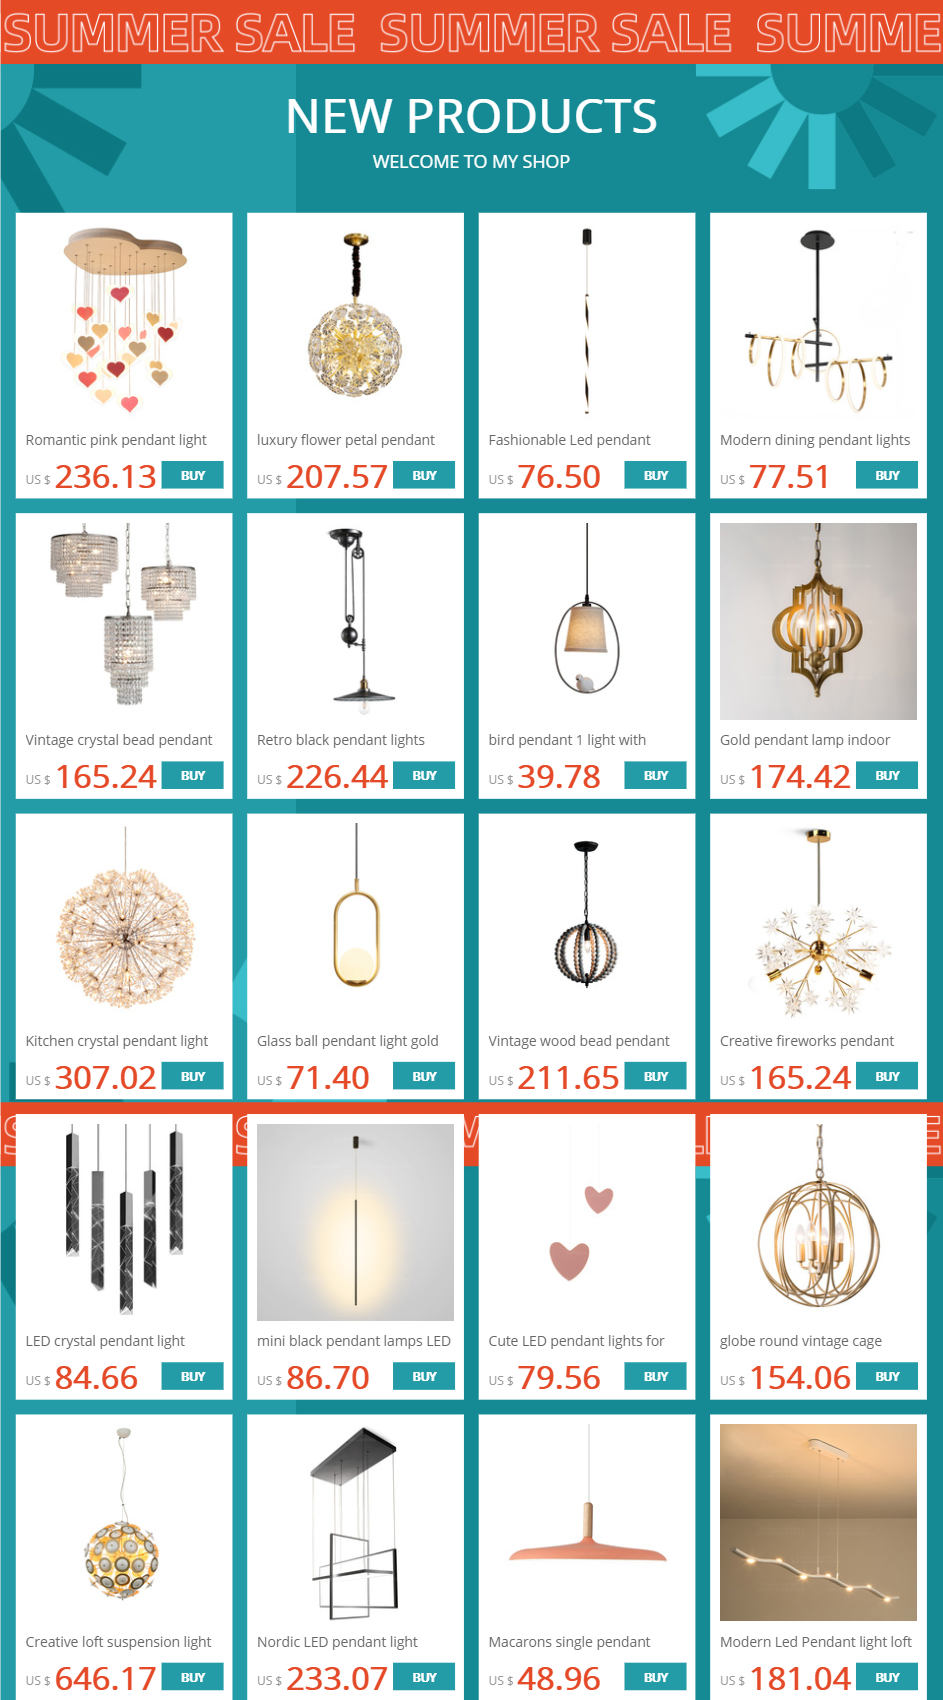 H4ae7ea40fda944b6acacaf5ebf41f255B - Antique brass wall lamp glass cylinder shade home indoor decorative wall lights in bedroom bedside wall mounted sconce interior